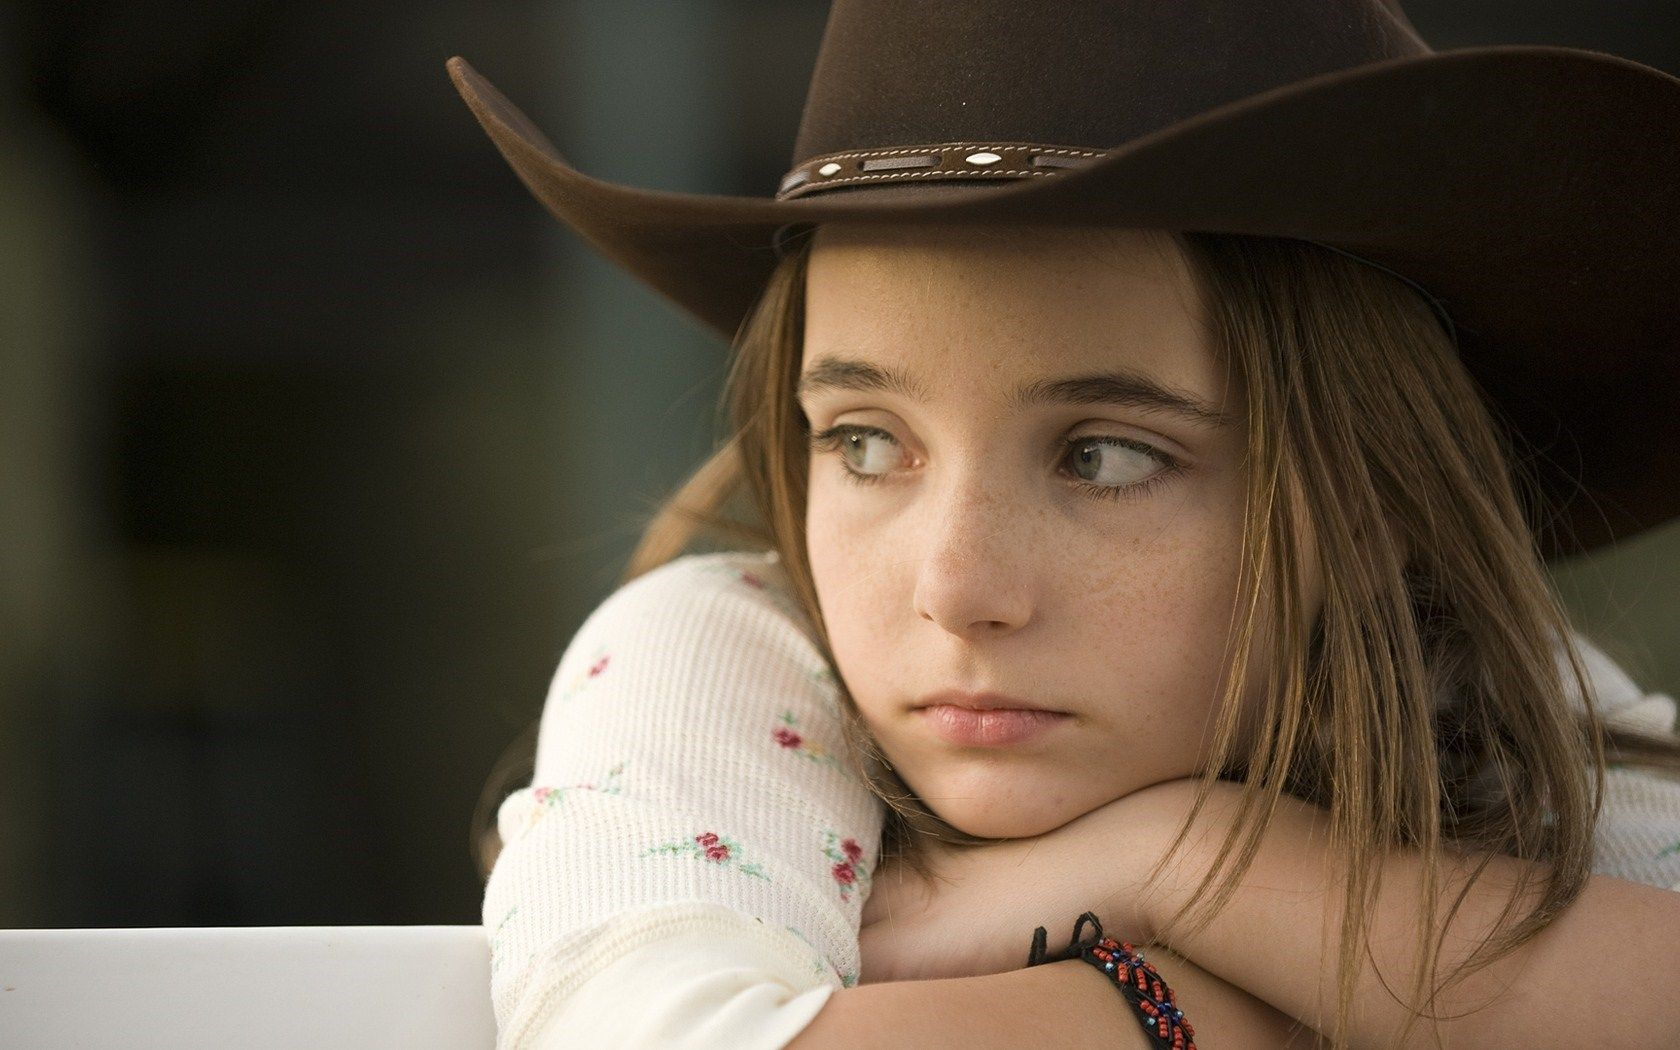 girl kid hat mood hd wallpaper | cool wallpapers | pinterest | hd